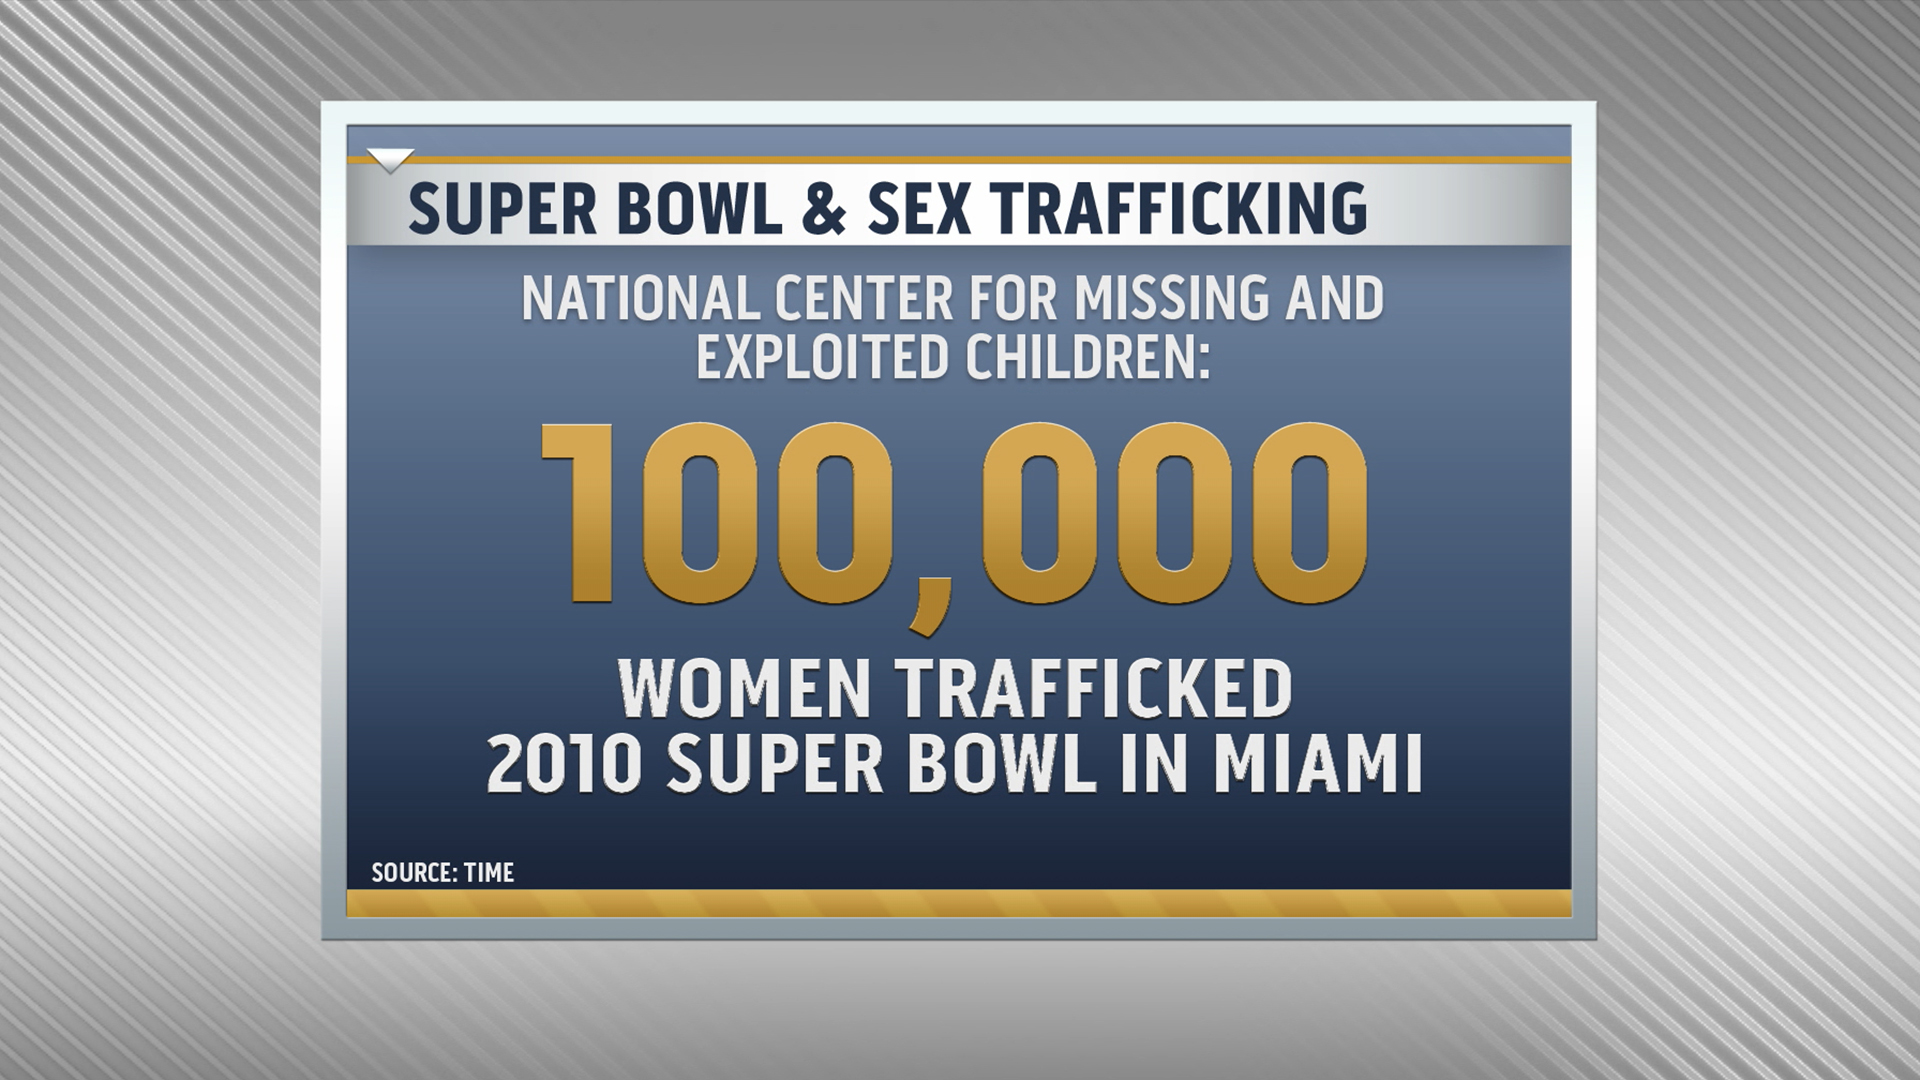 Sex trafficking and the Super Bowl